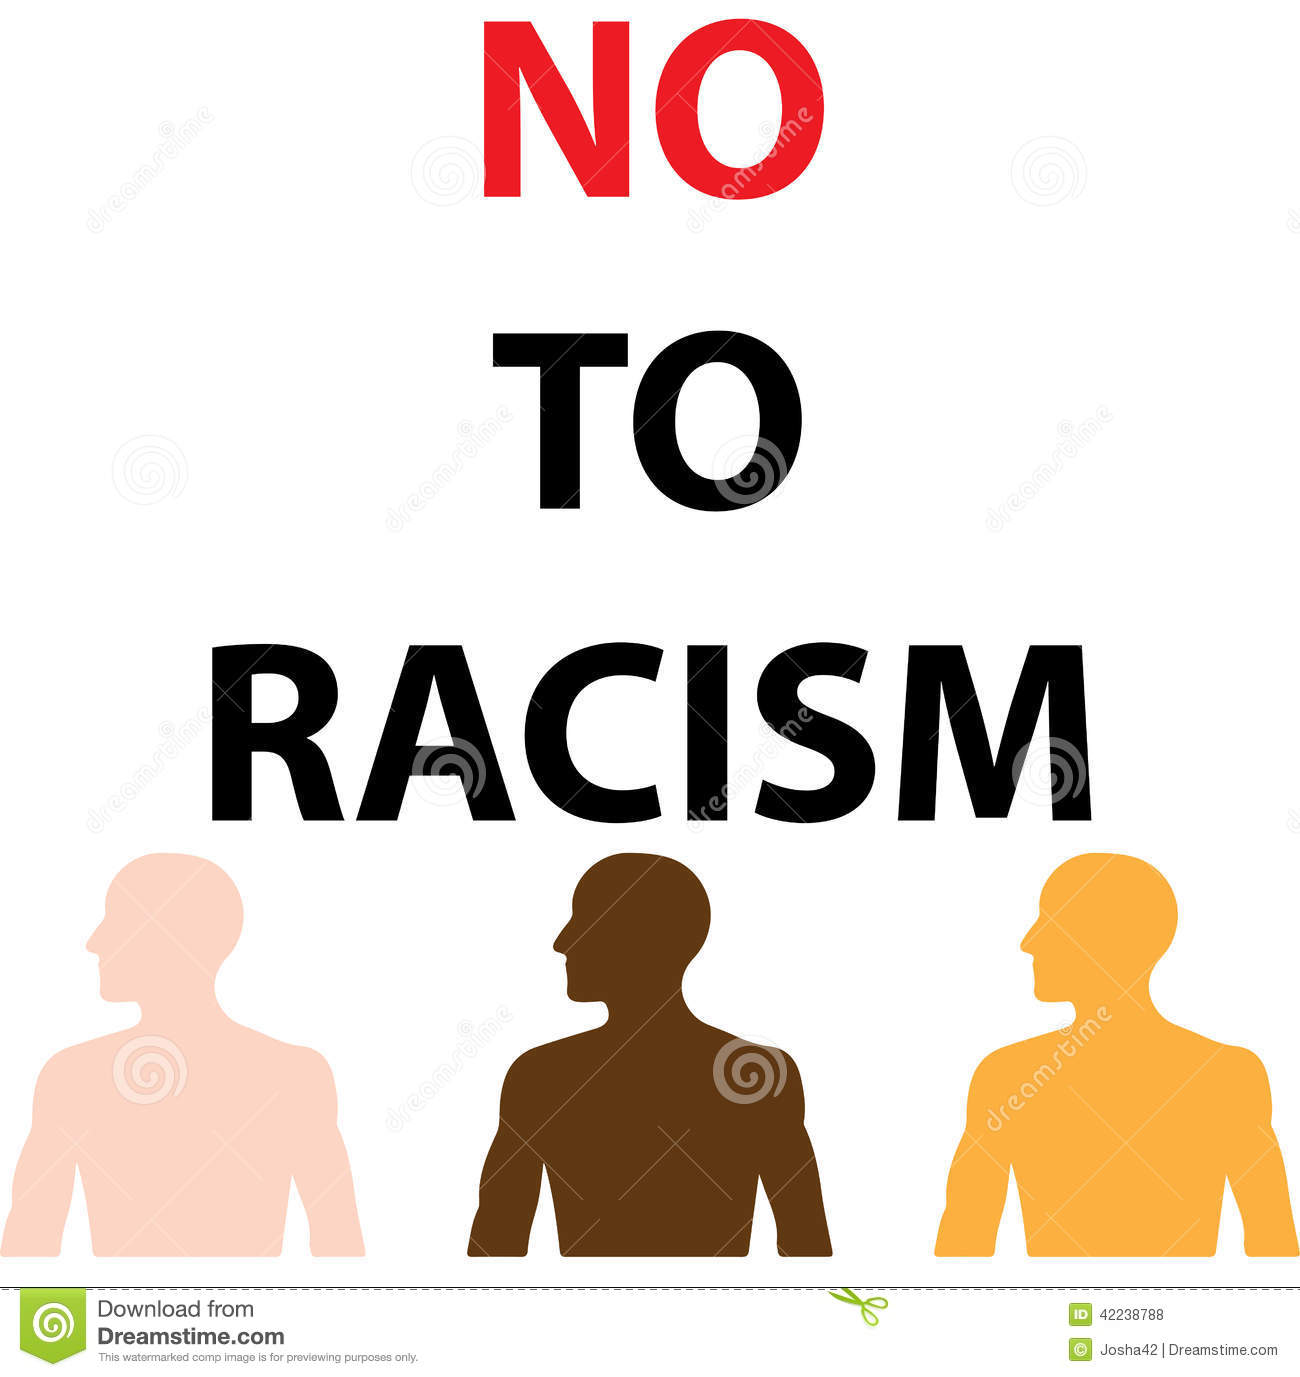 Say No To Racism Stock Vector - Image: 42238788